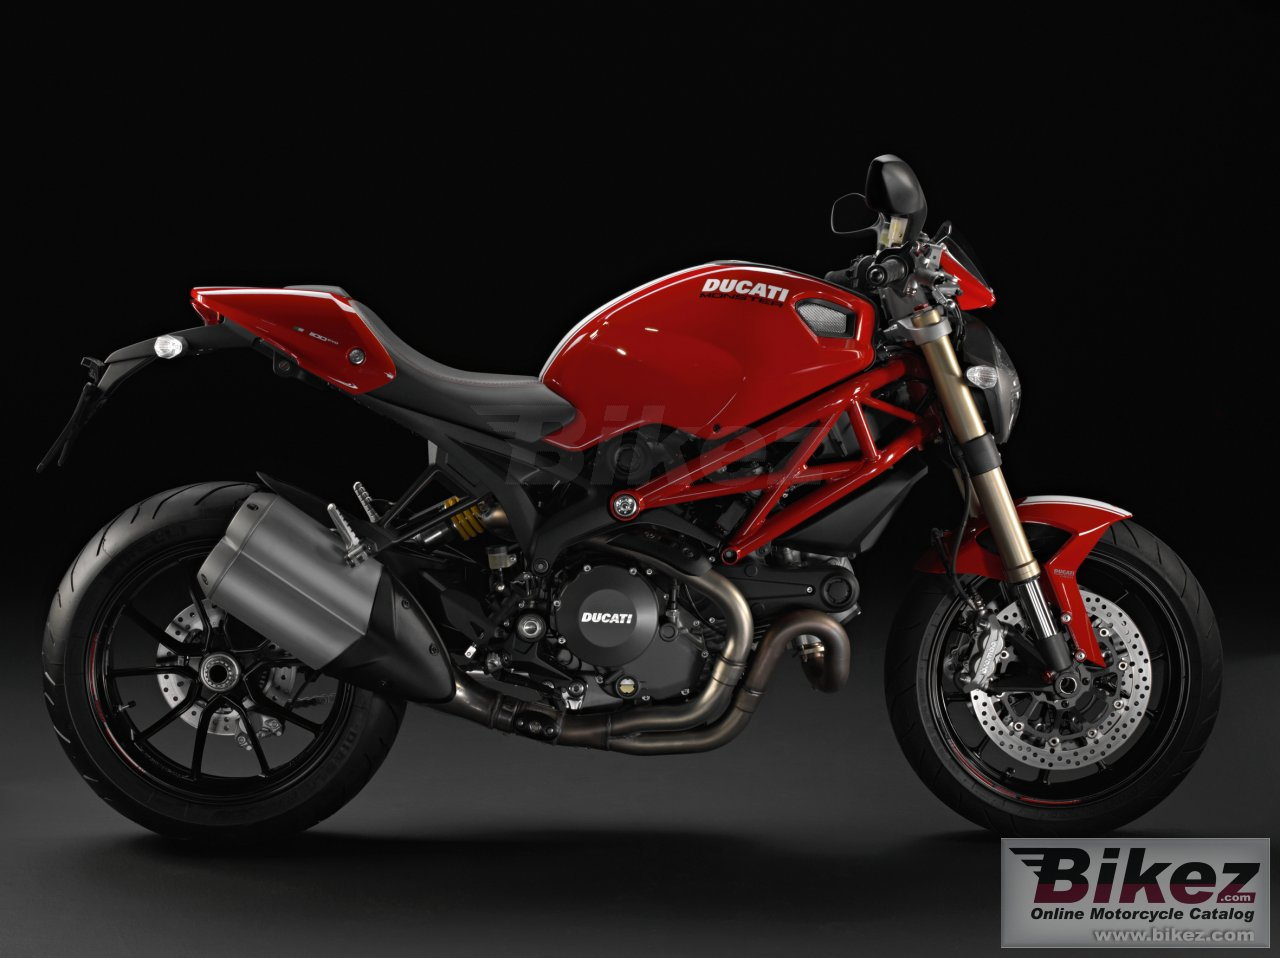 Big Ducati monster 1100 evo picture and wallpaper from Bikez.com